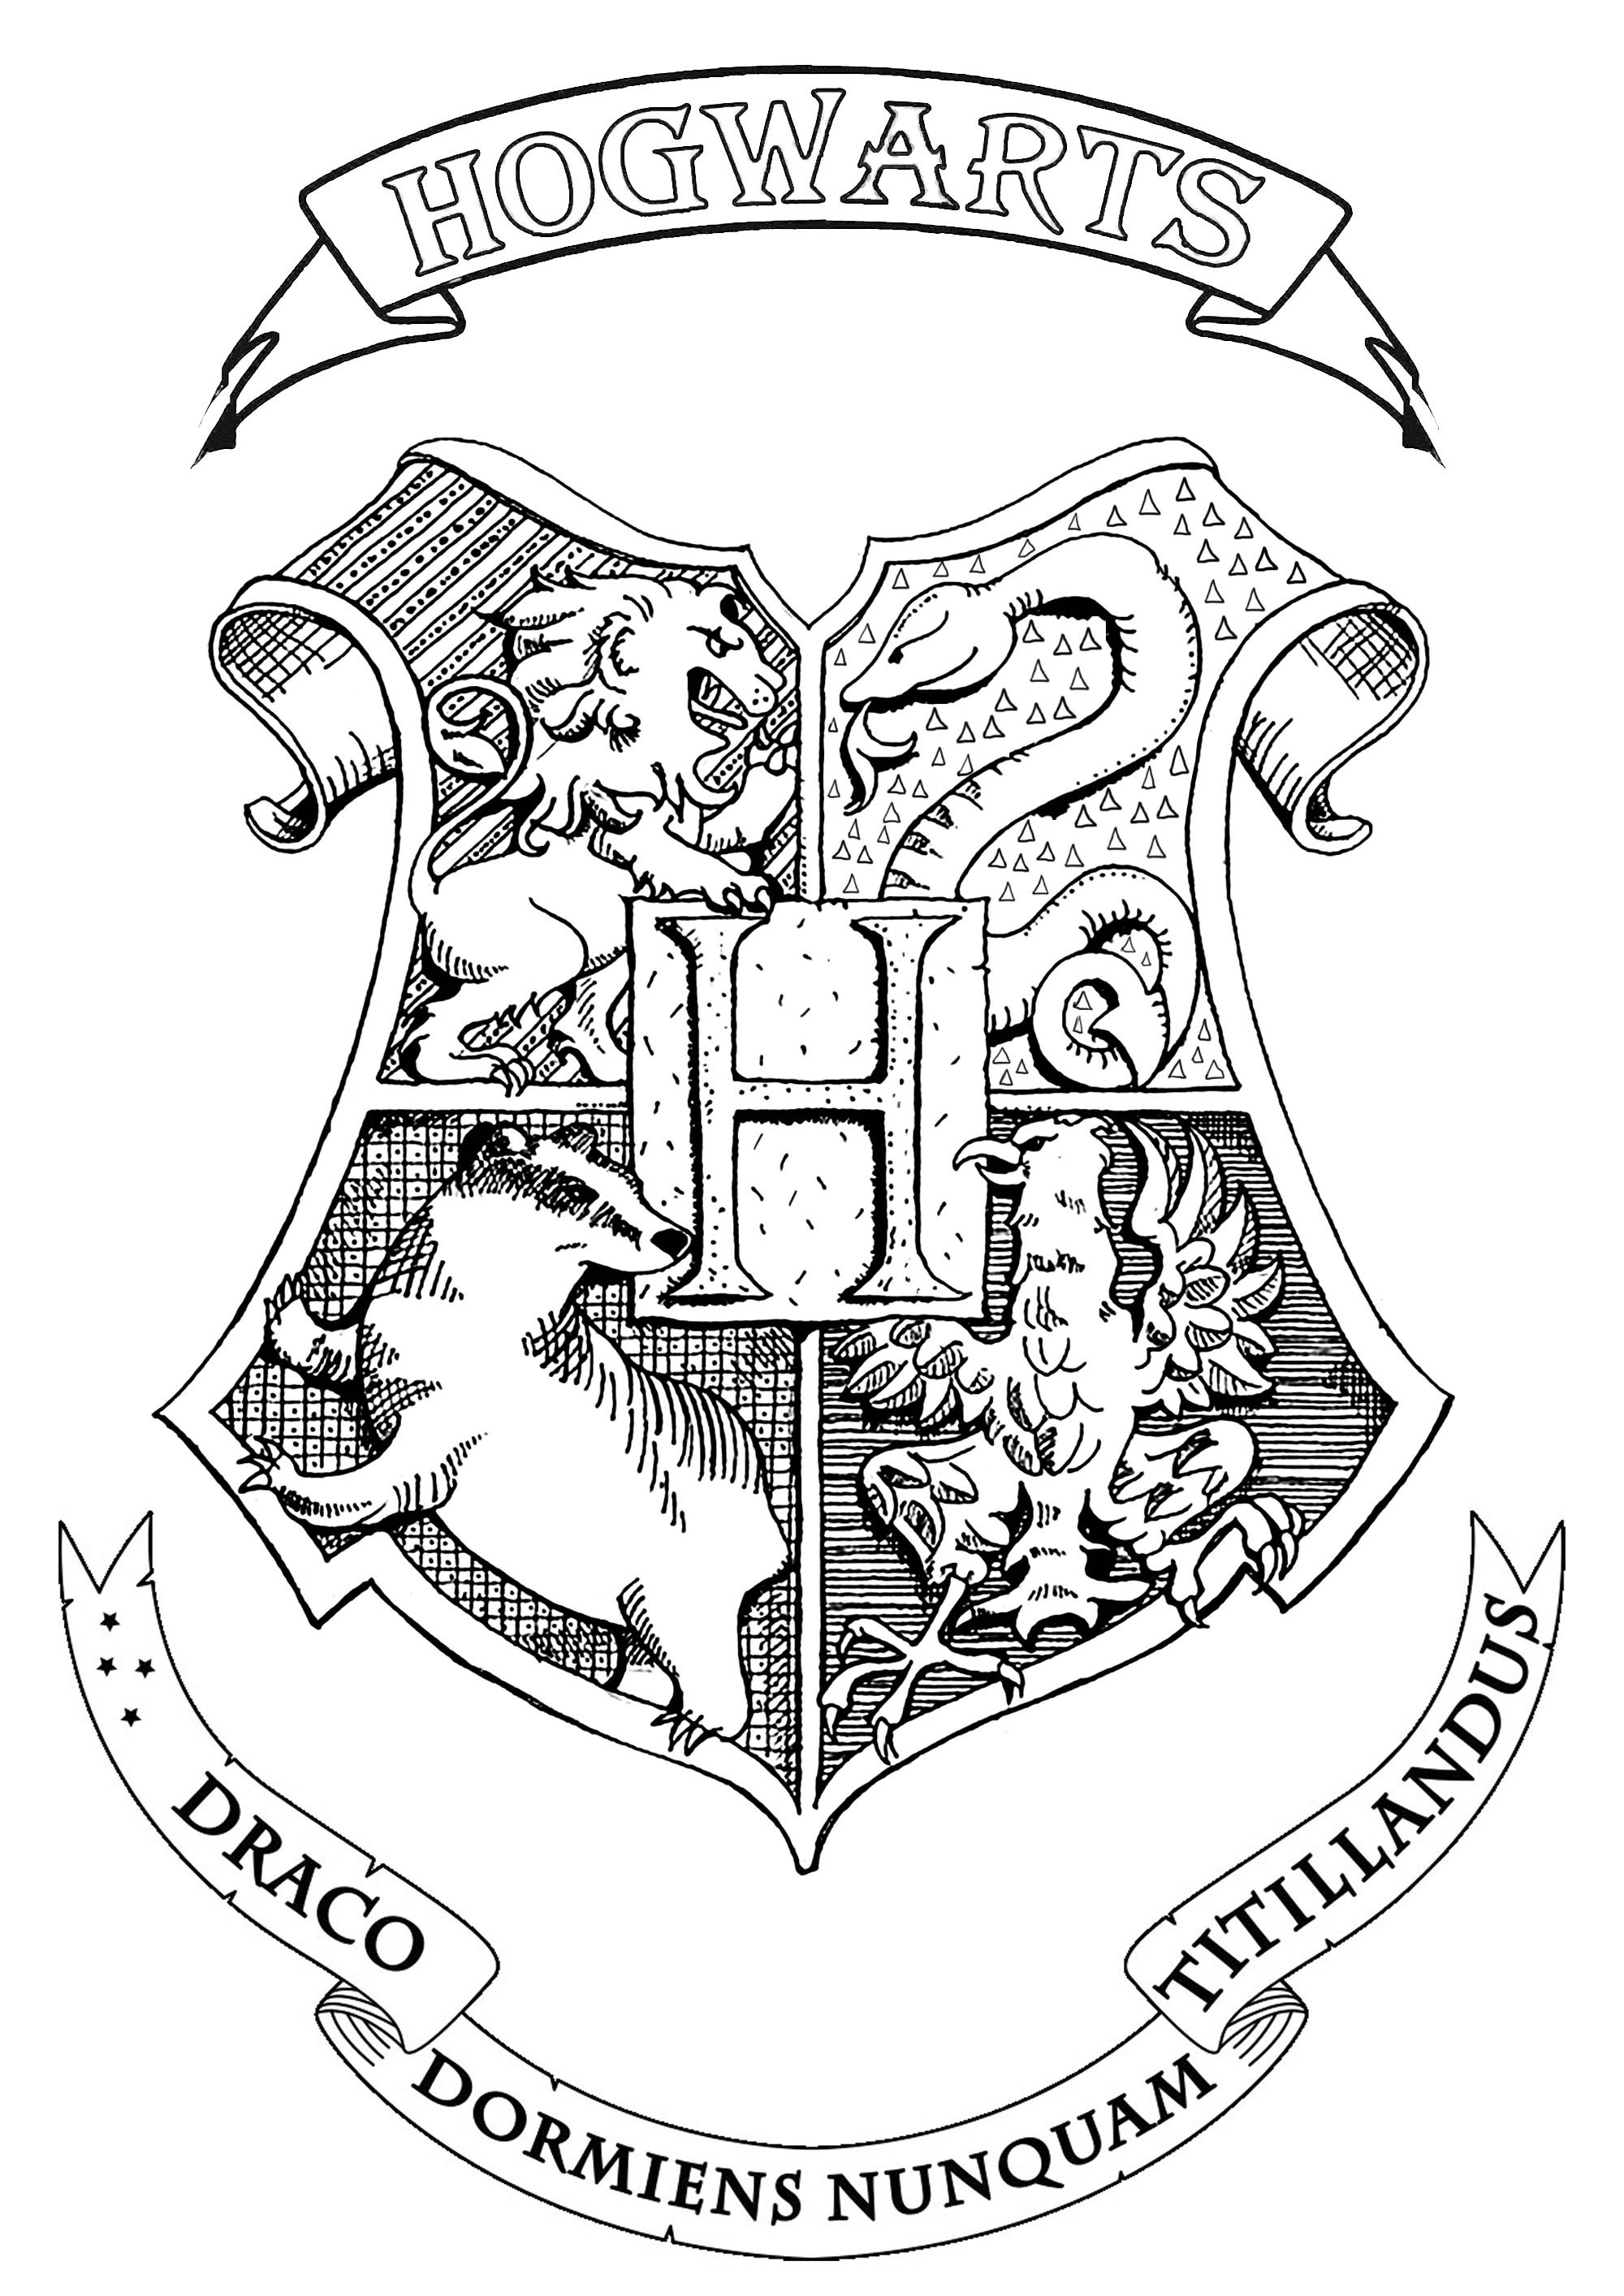 What Is The B Emblem From Harry Potter Coloring Book